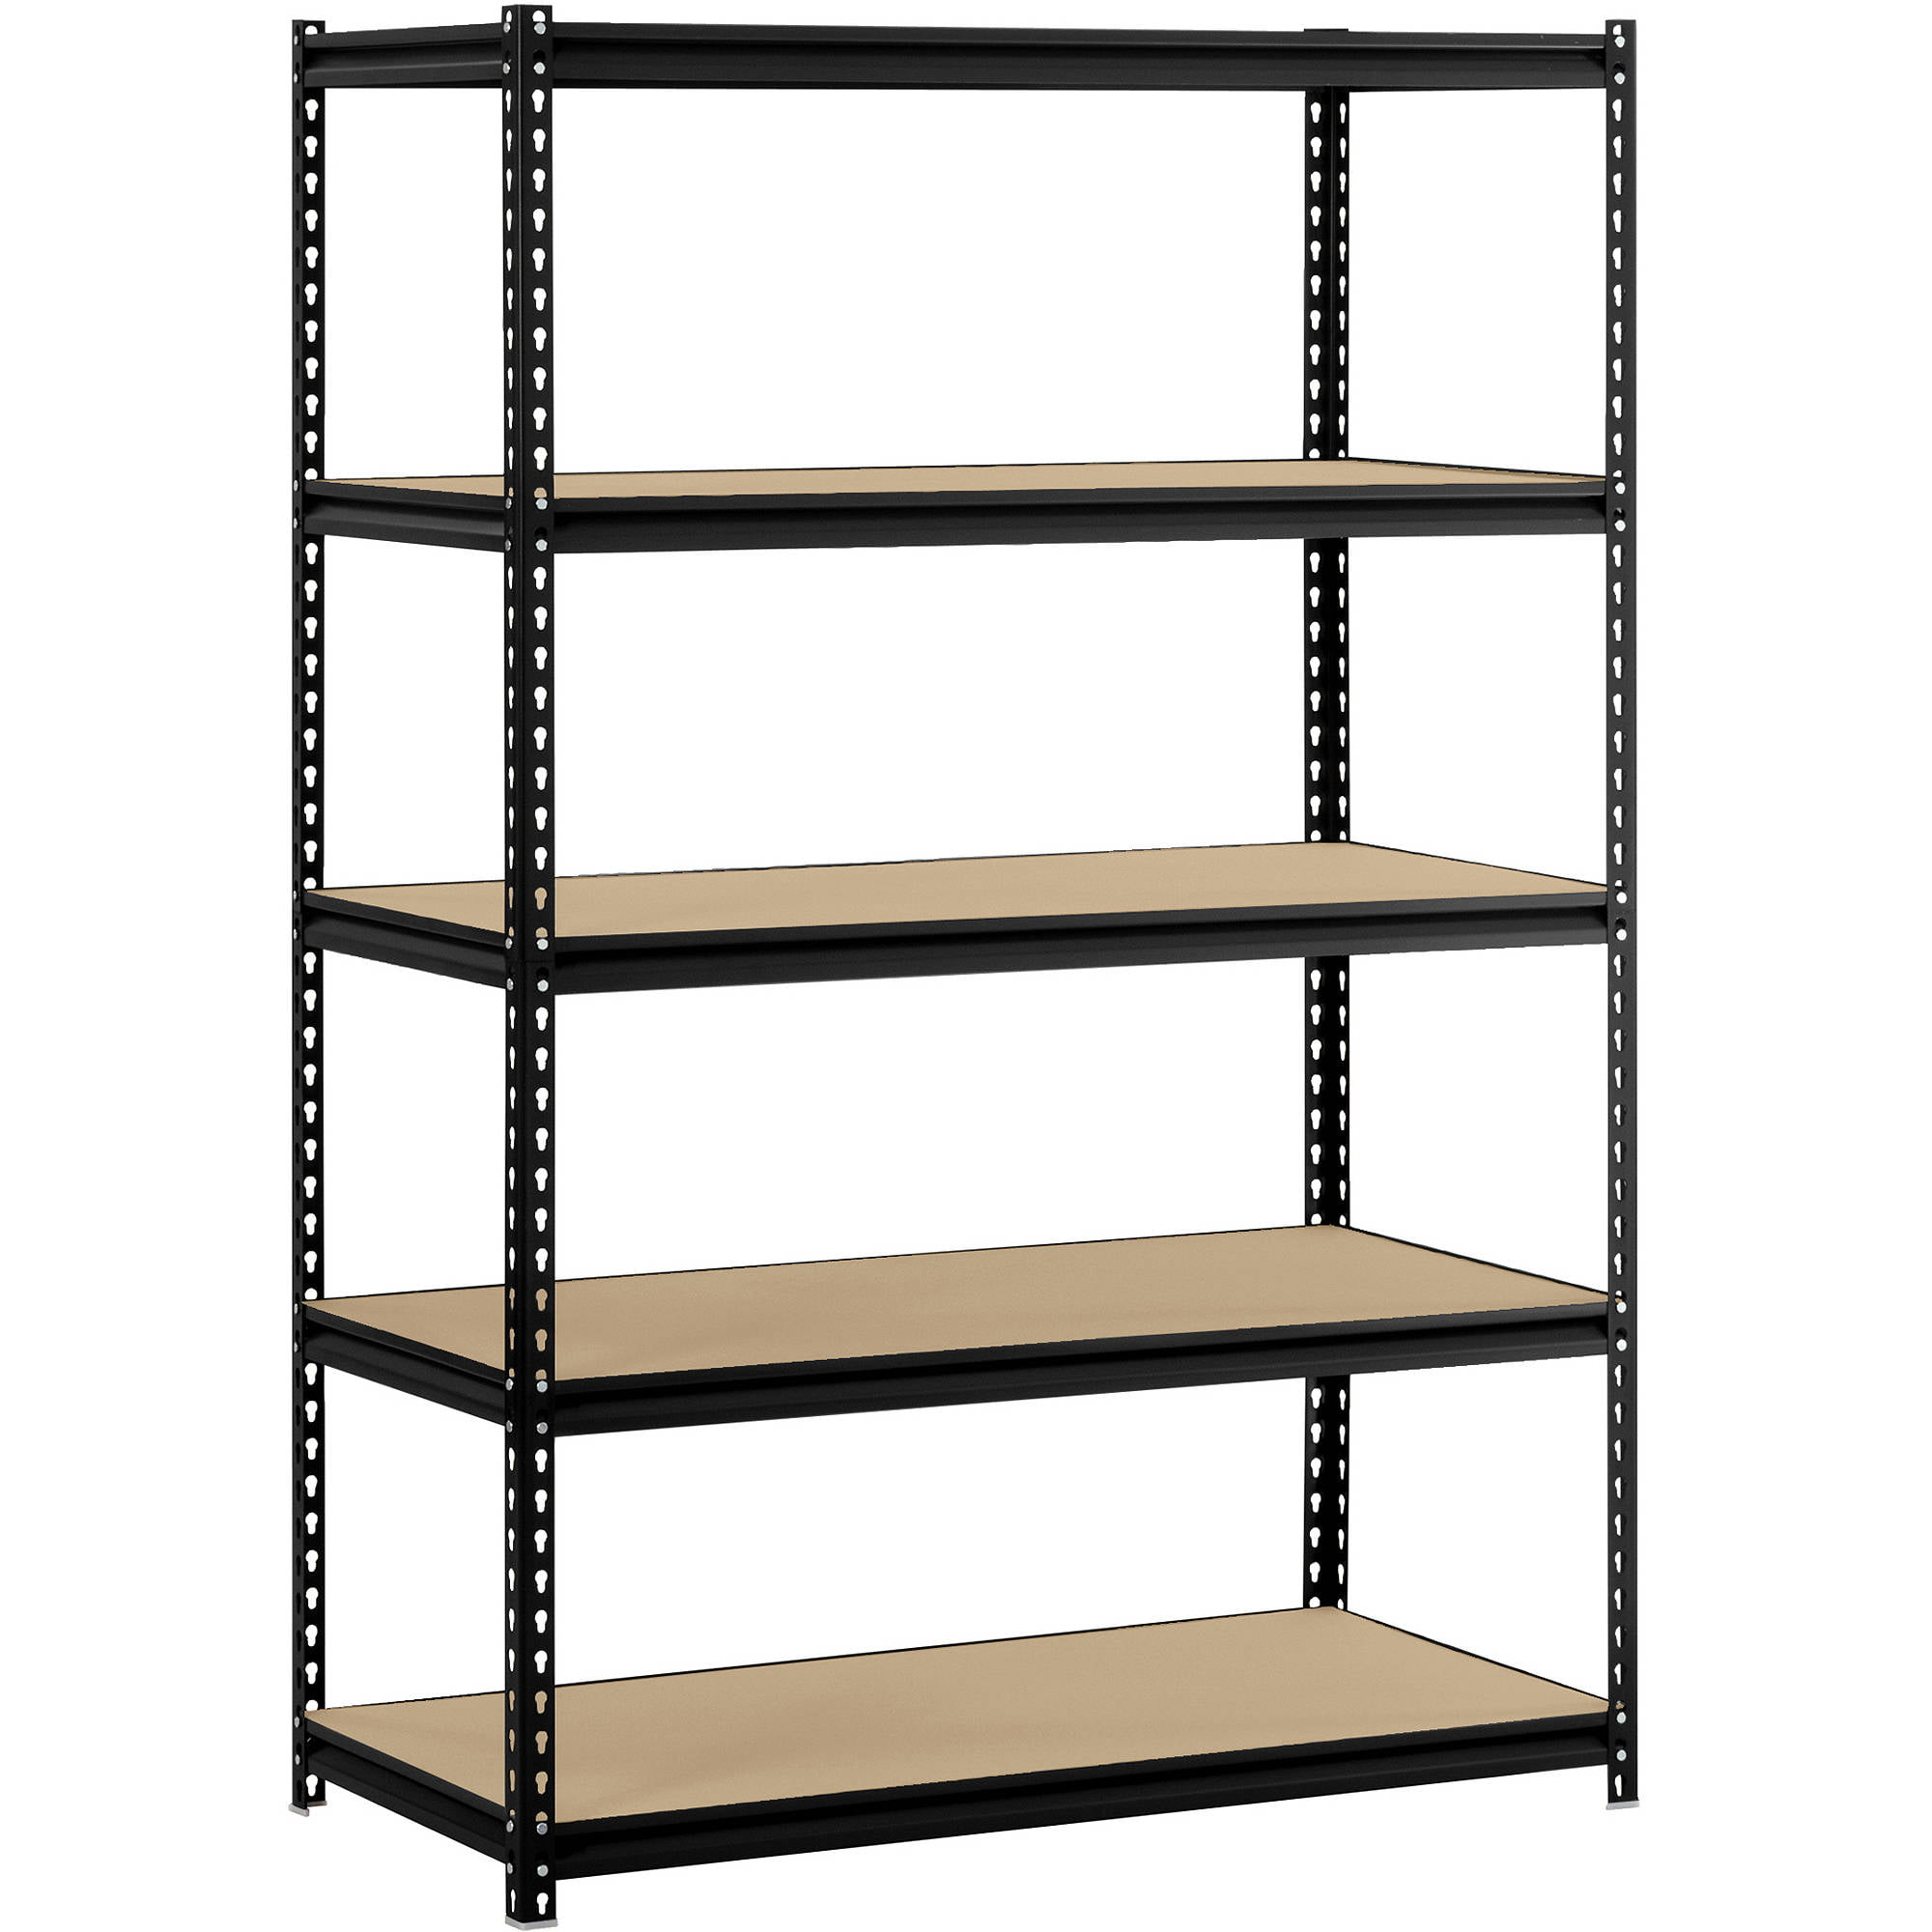 decks systems products pallets used beams shelf rack shelving and other new racking frames